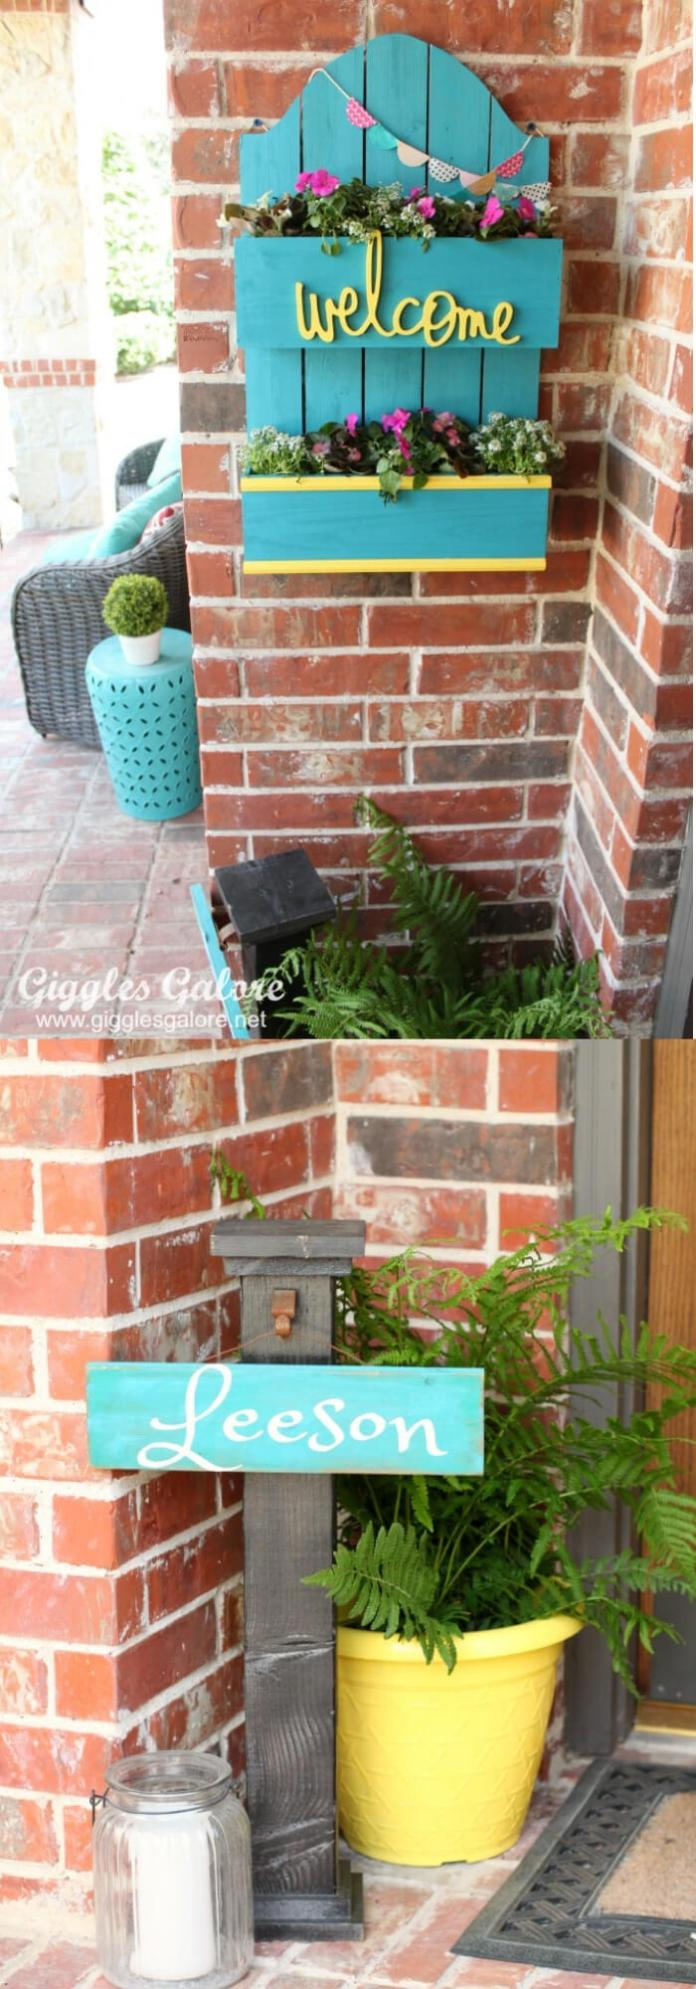 Spring Planter Box Welcome | Best Spring Porch Sign Decor Ideas & Designs